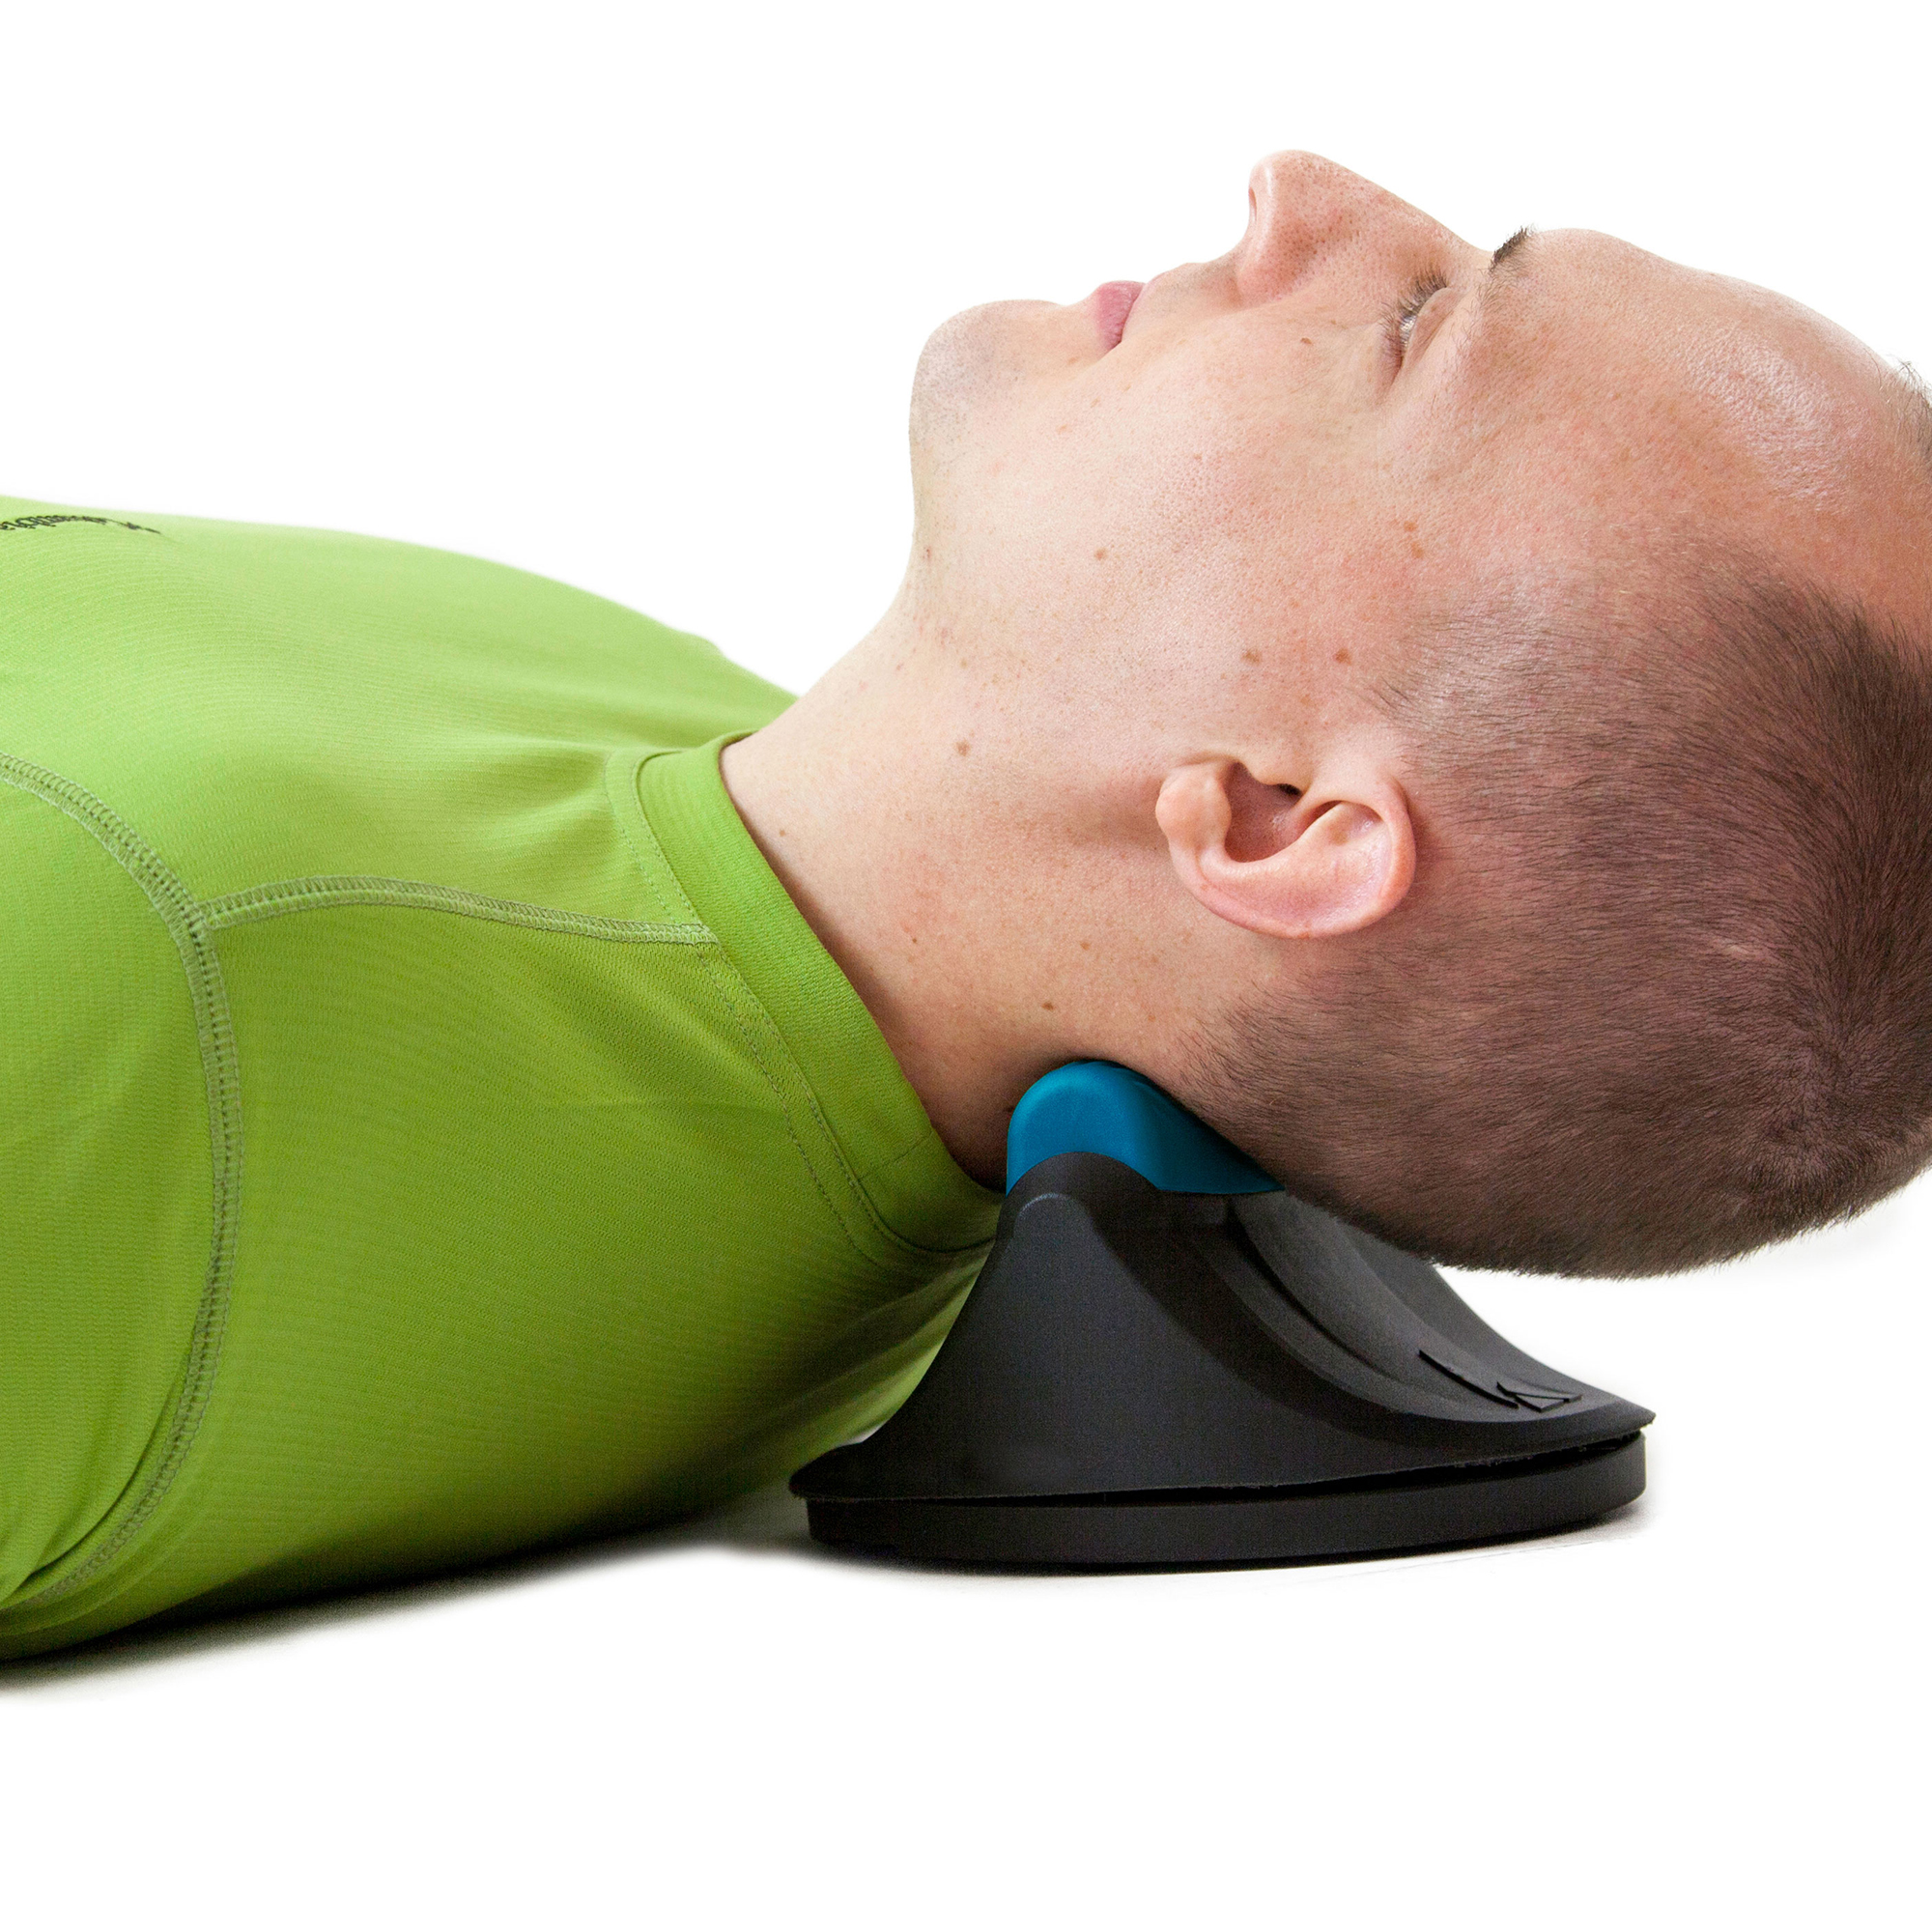 Neck Relax - The Best Neck Pain Treatment Choice For You